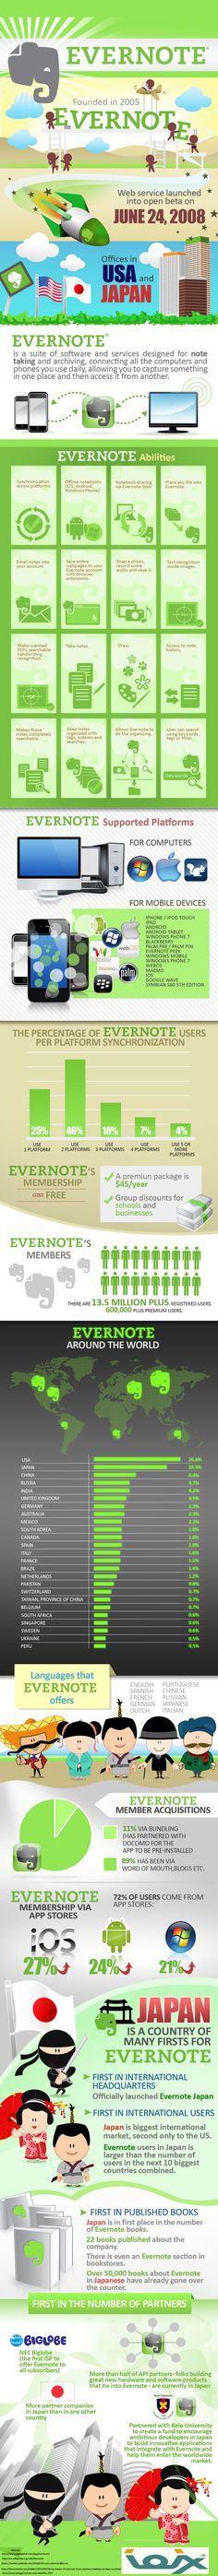 evernote for organizing EVERYTHING